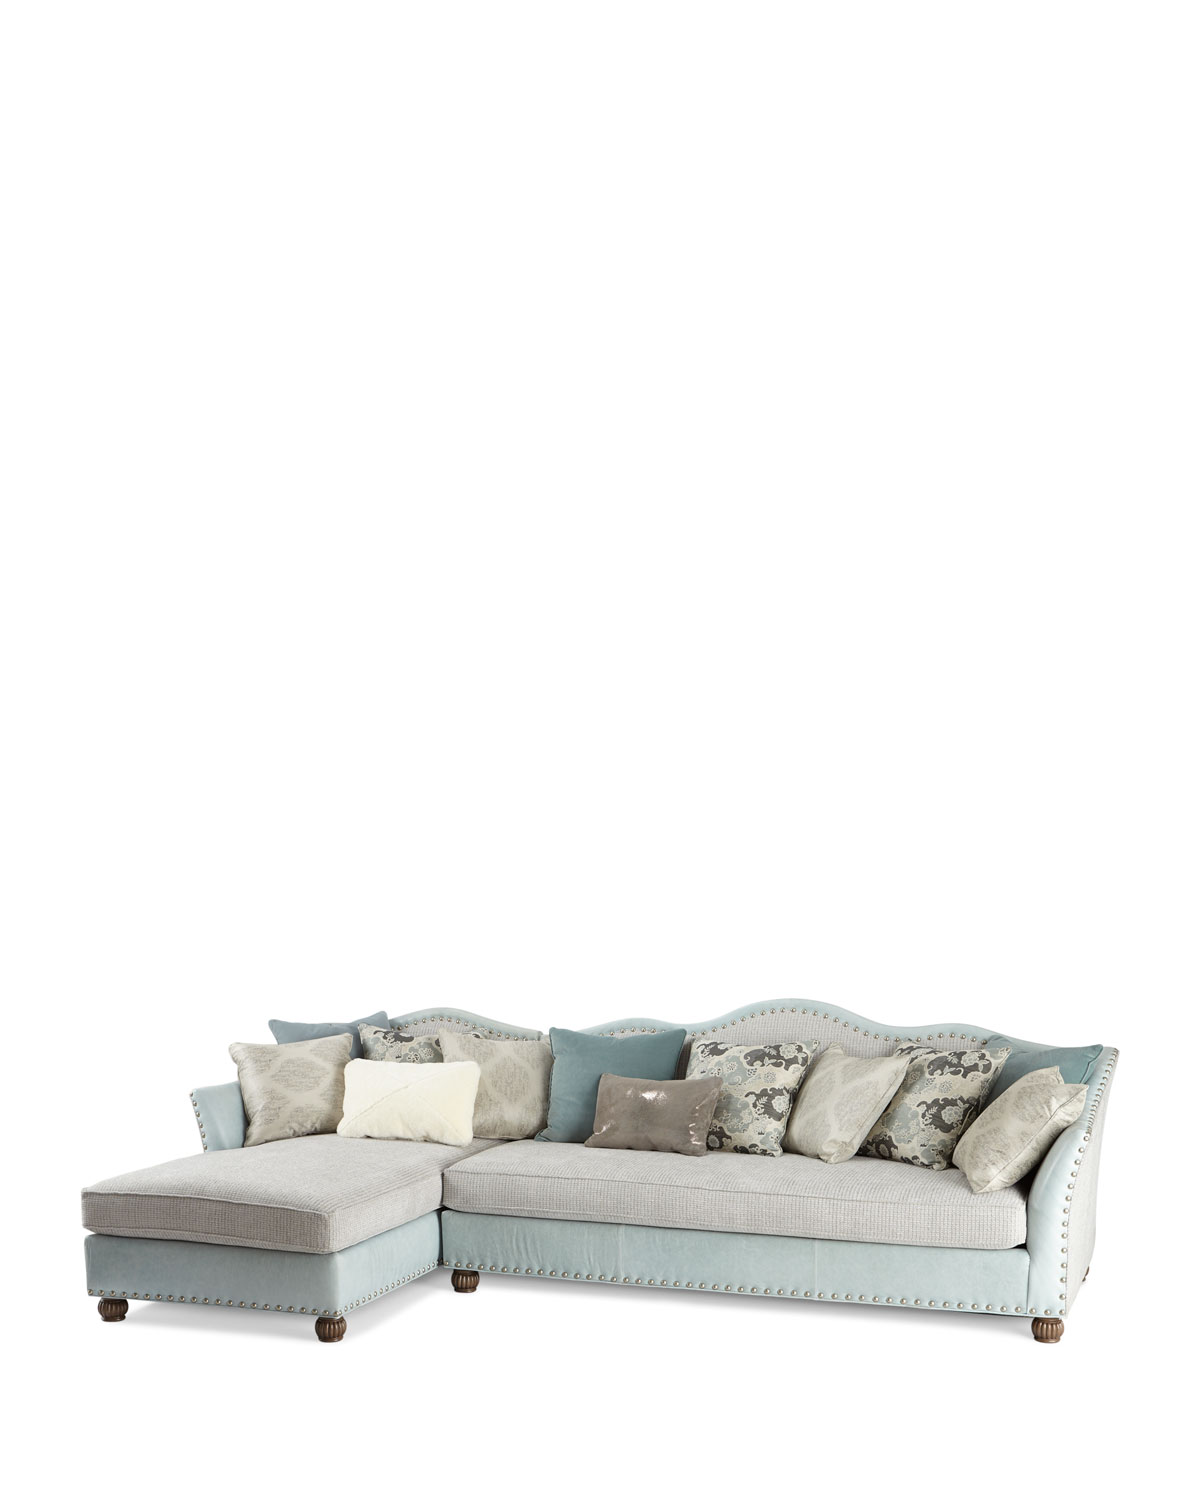 Massoudtrulee Left Chaise Sectional 146 Quot